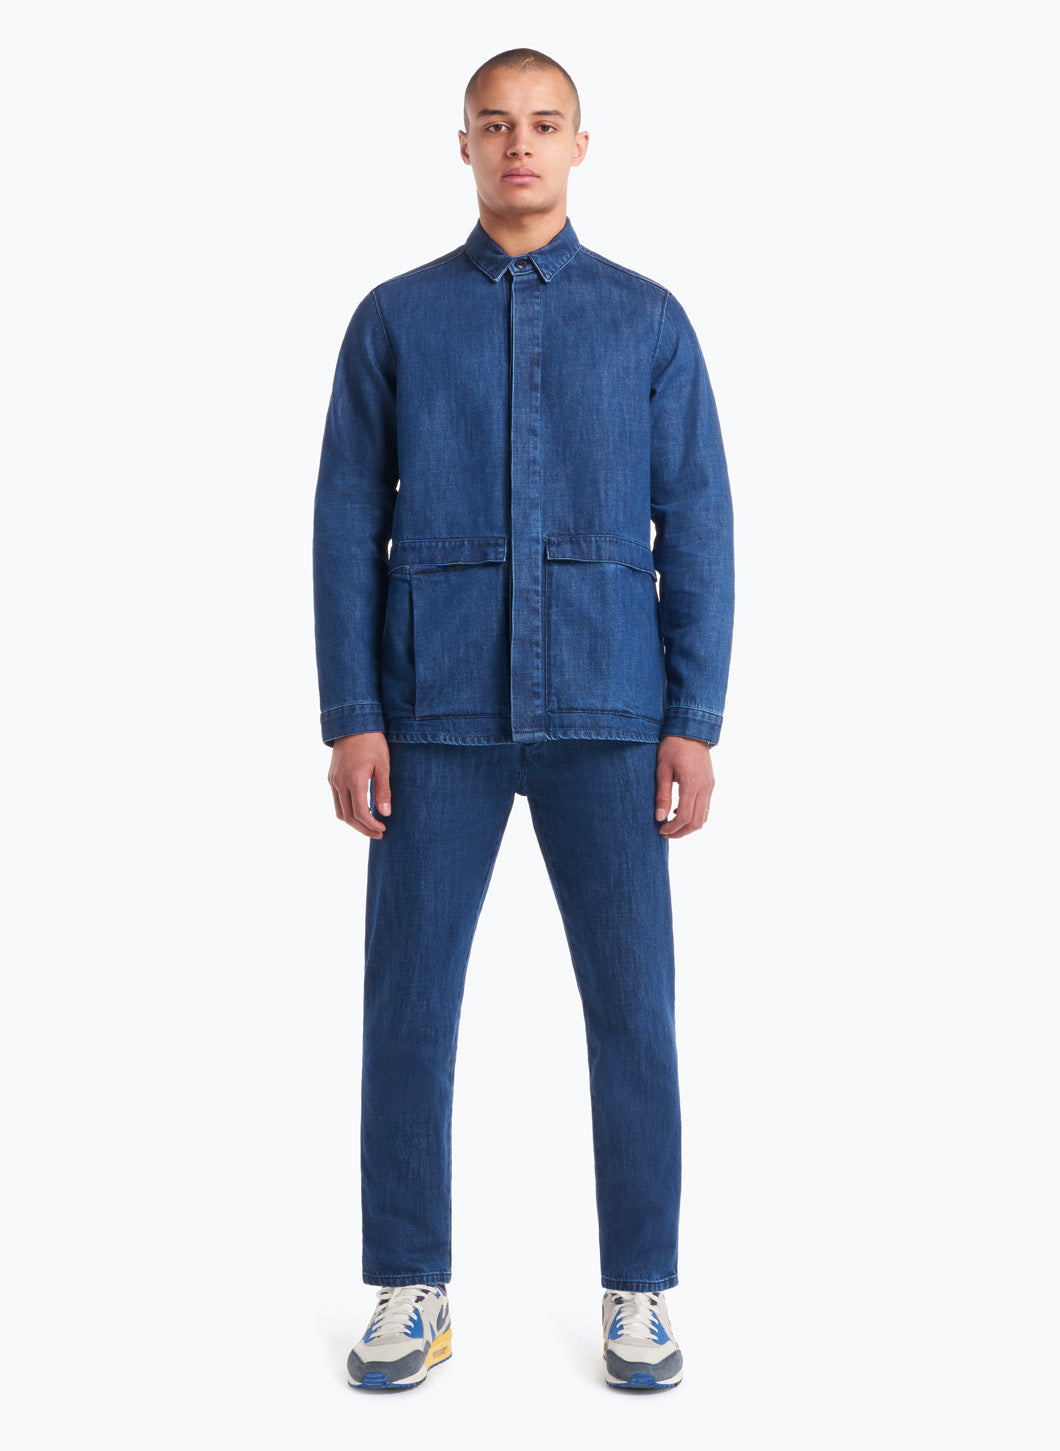 Jacket-Shirt with Flap Pockets in Stoned Denim